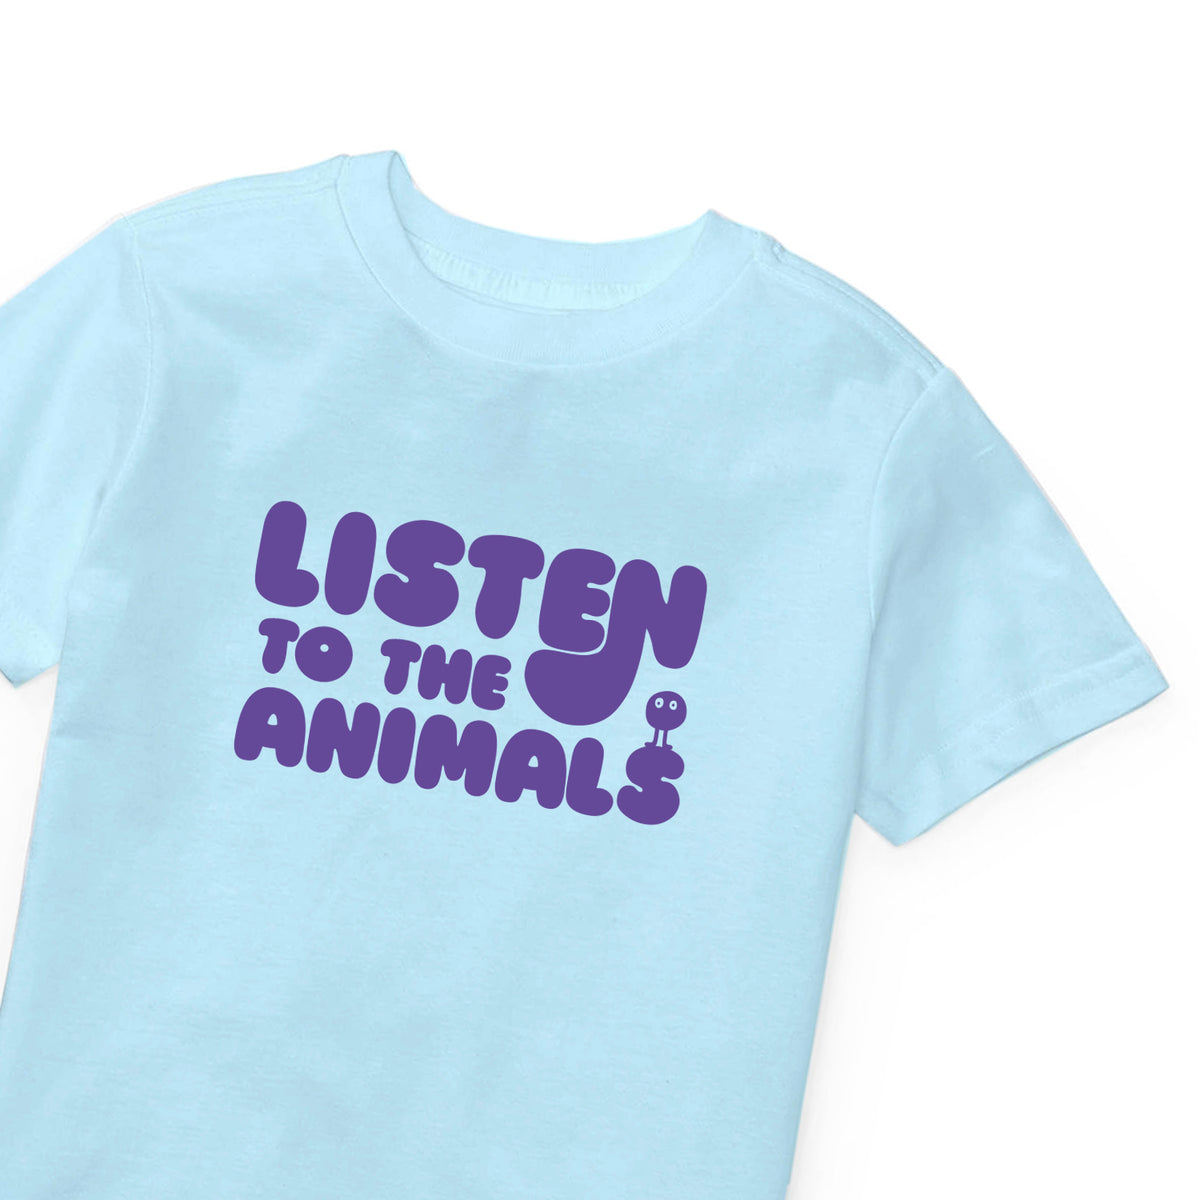 Listen To The Animals T shirt